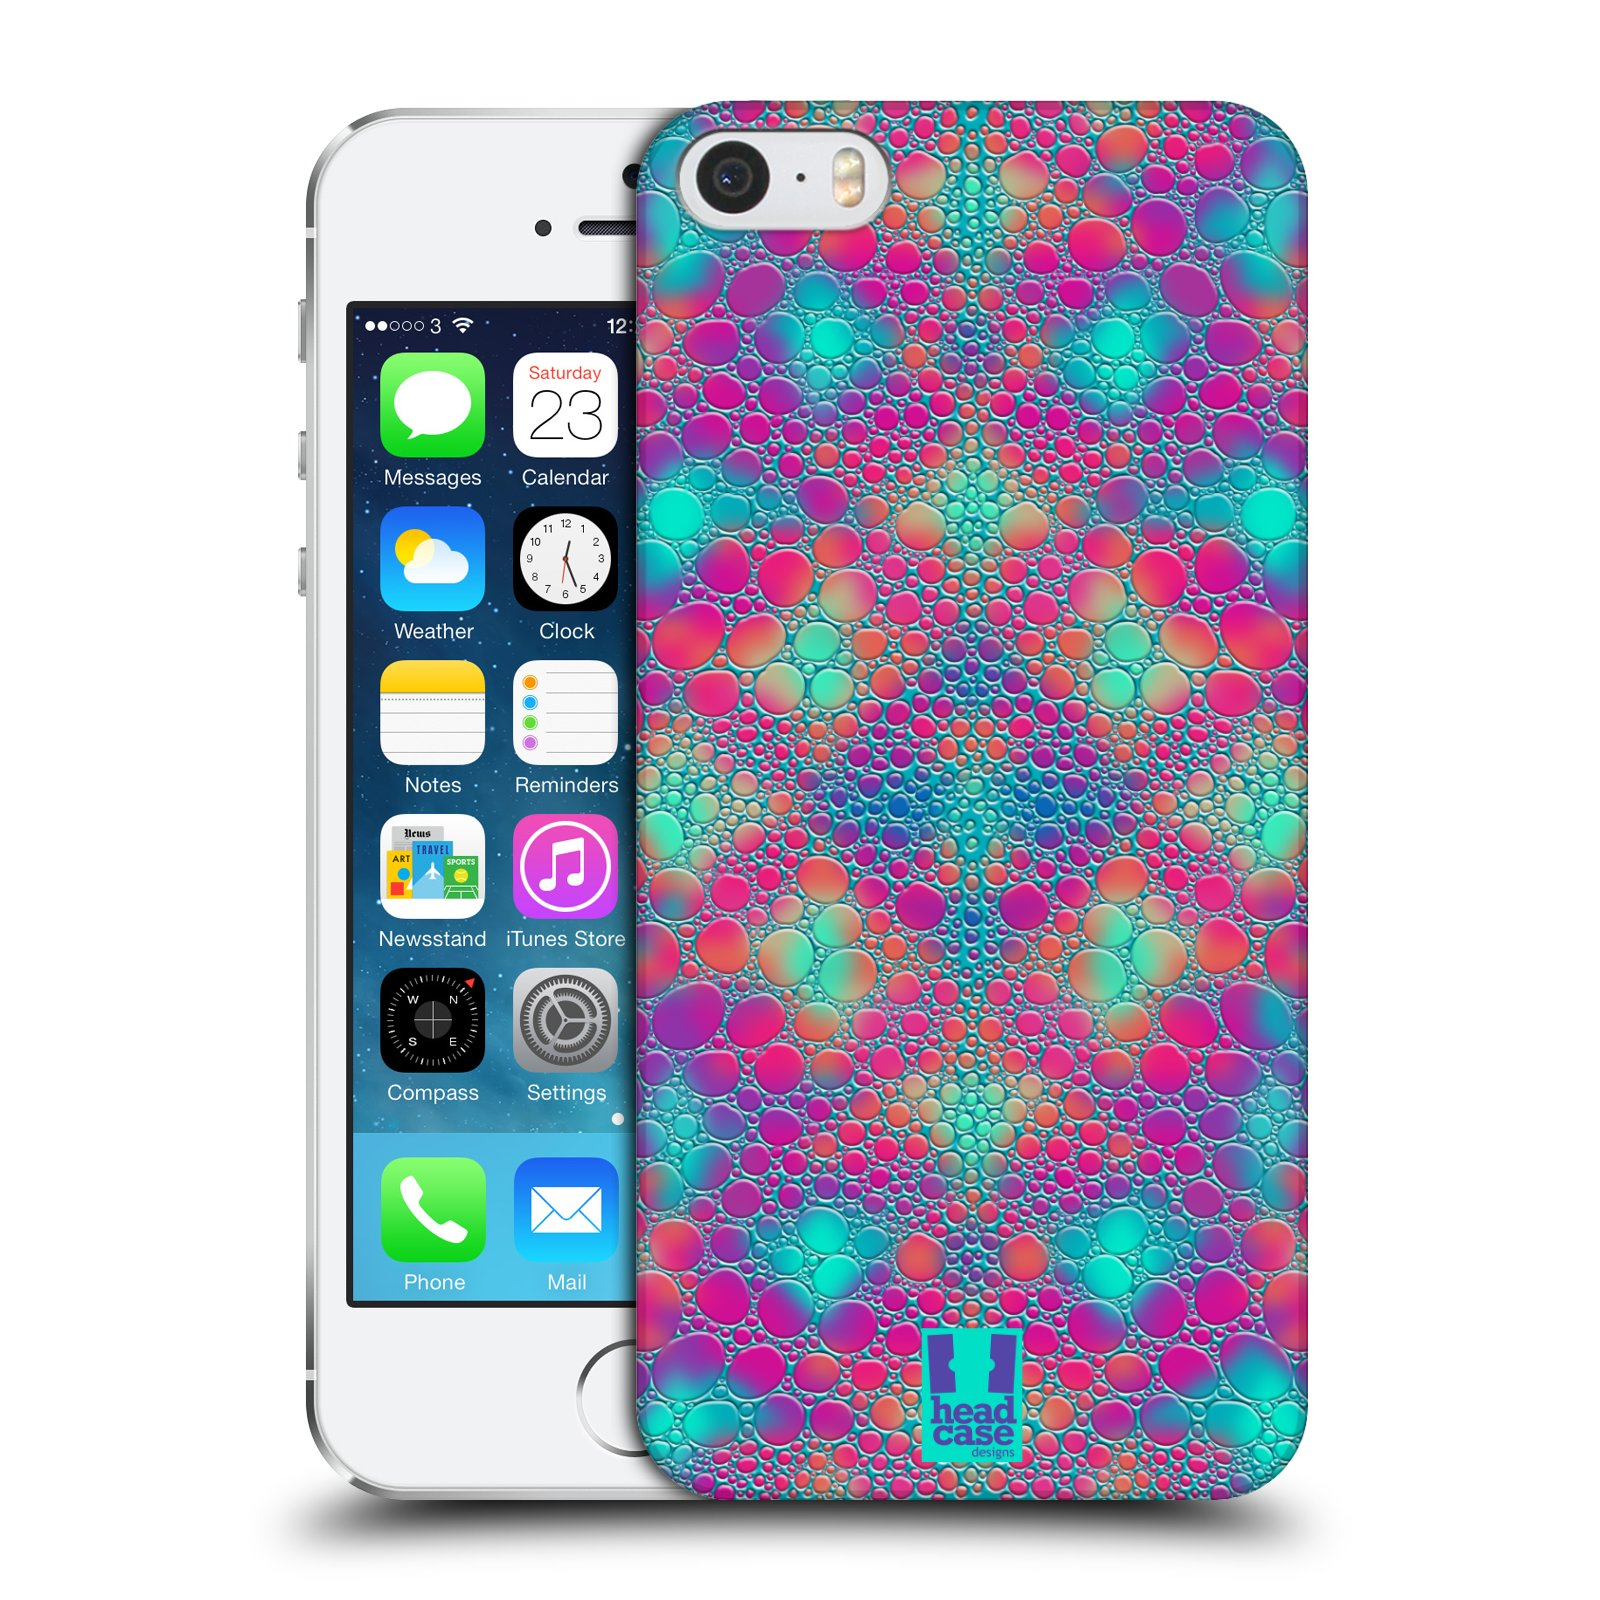 HEAD CASE DESIGNS CHAMELEON SKIN PATTERNS CASE COVER FOR APPLE iPHONE 5 5S